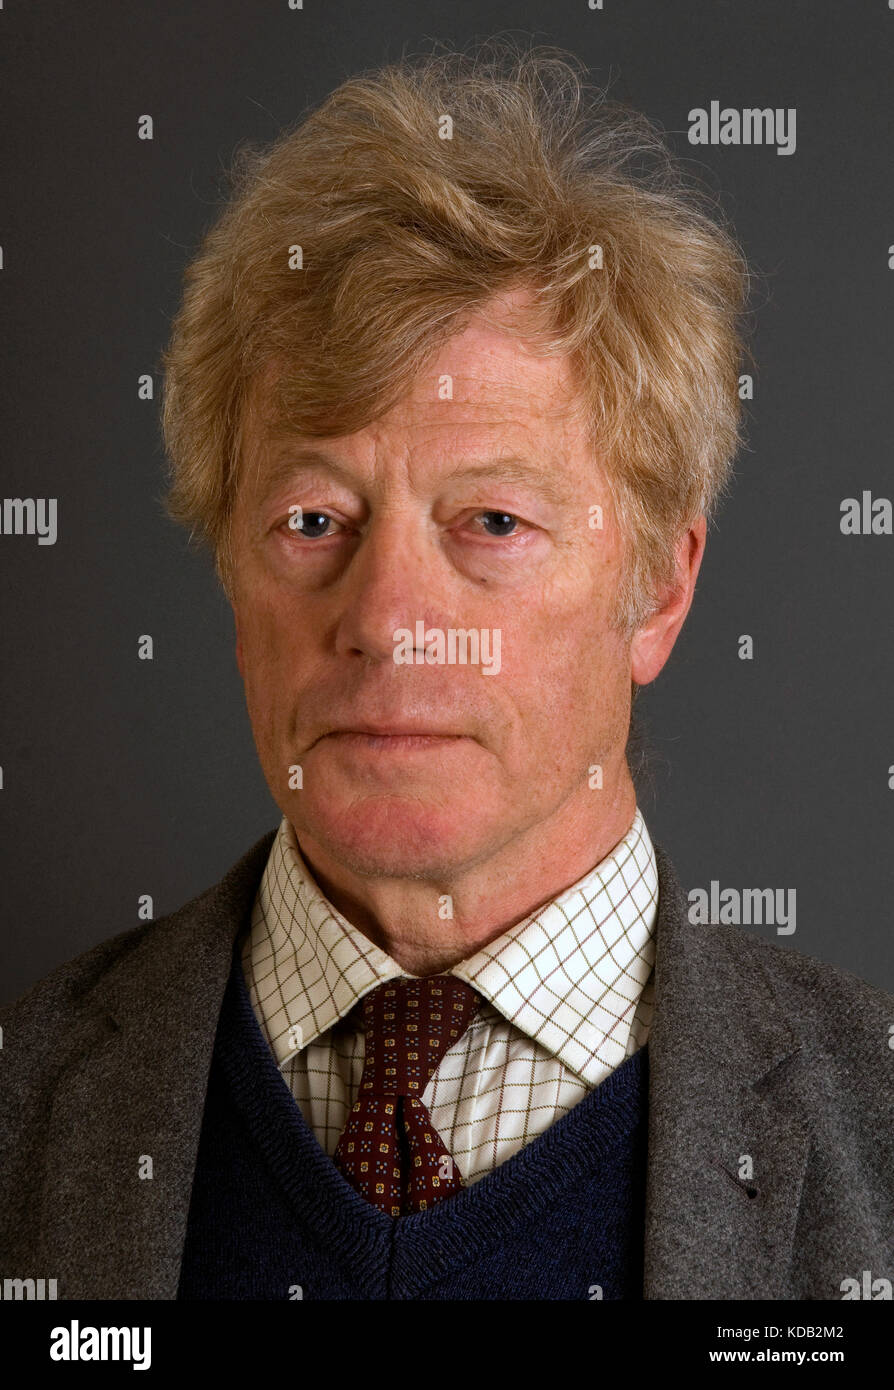 Sir Roger Scruton, philosopher and conservative writer. - Stock Image